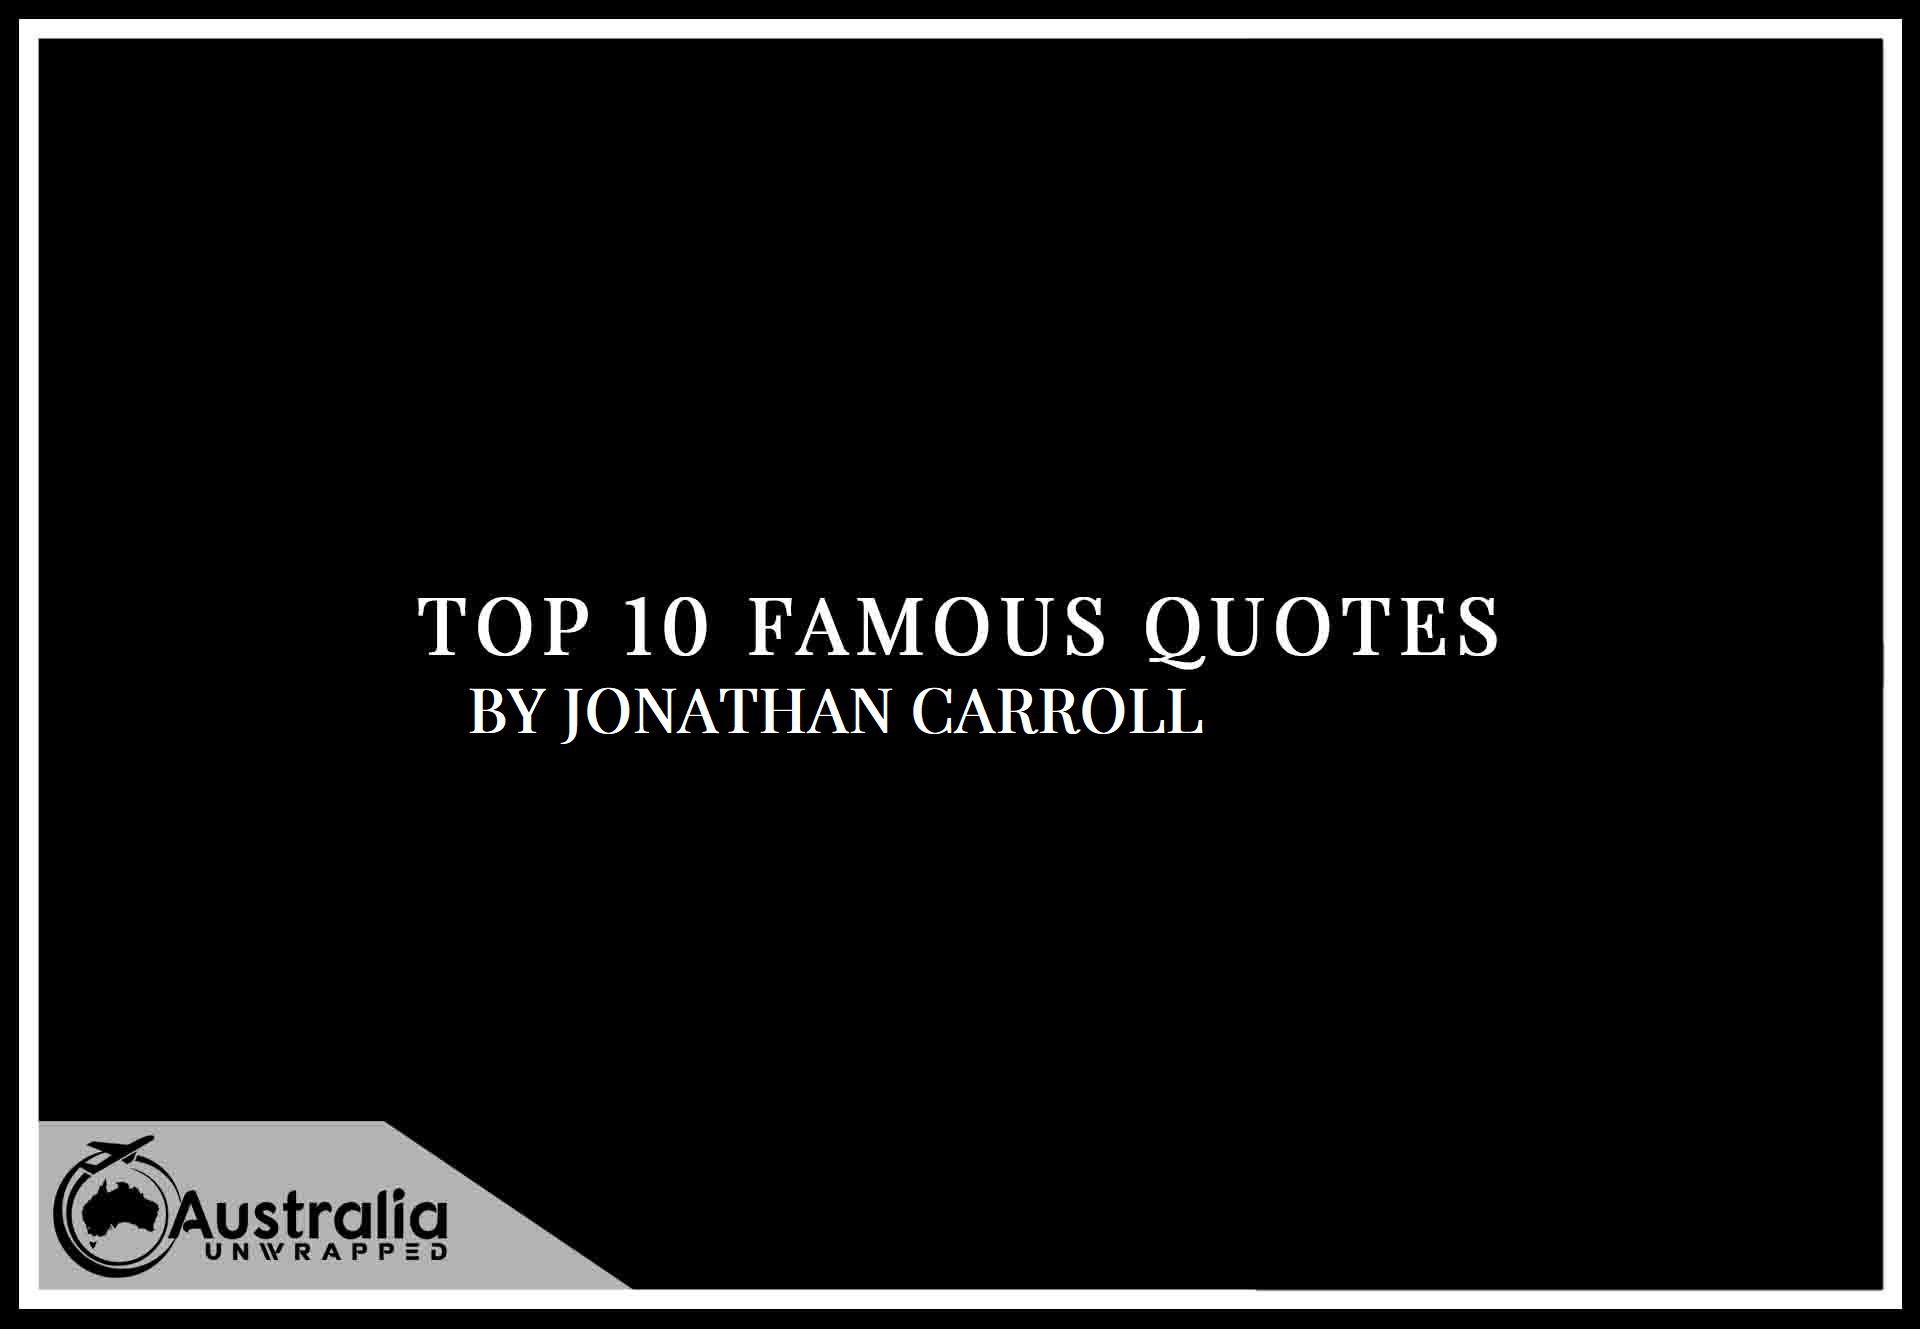 Top 10 Famous Quotes by Author Jonathan Carroll